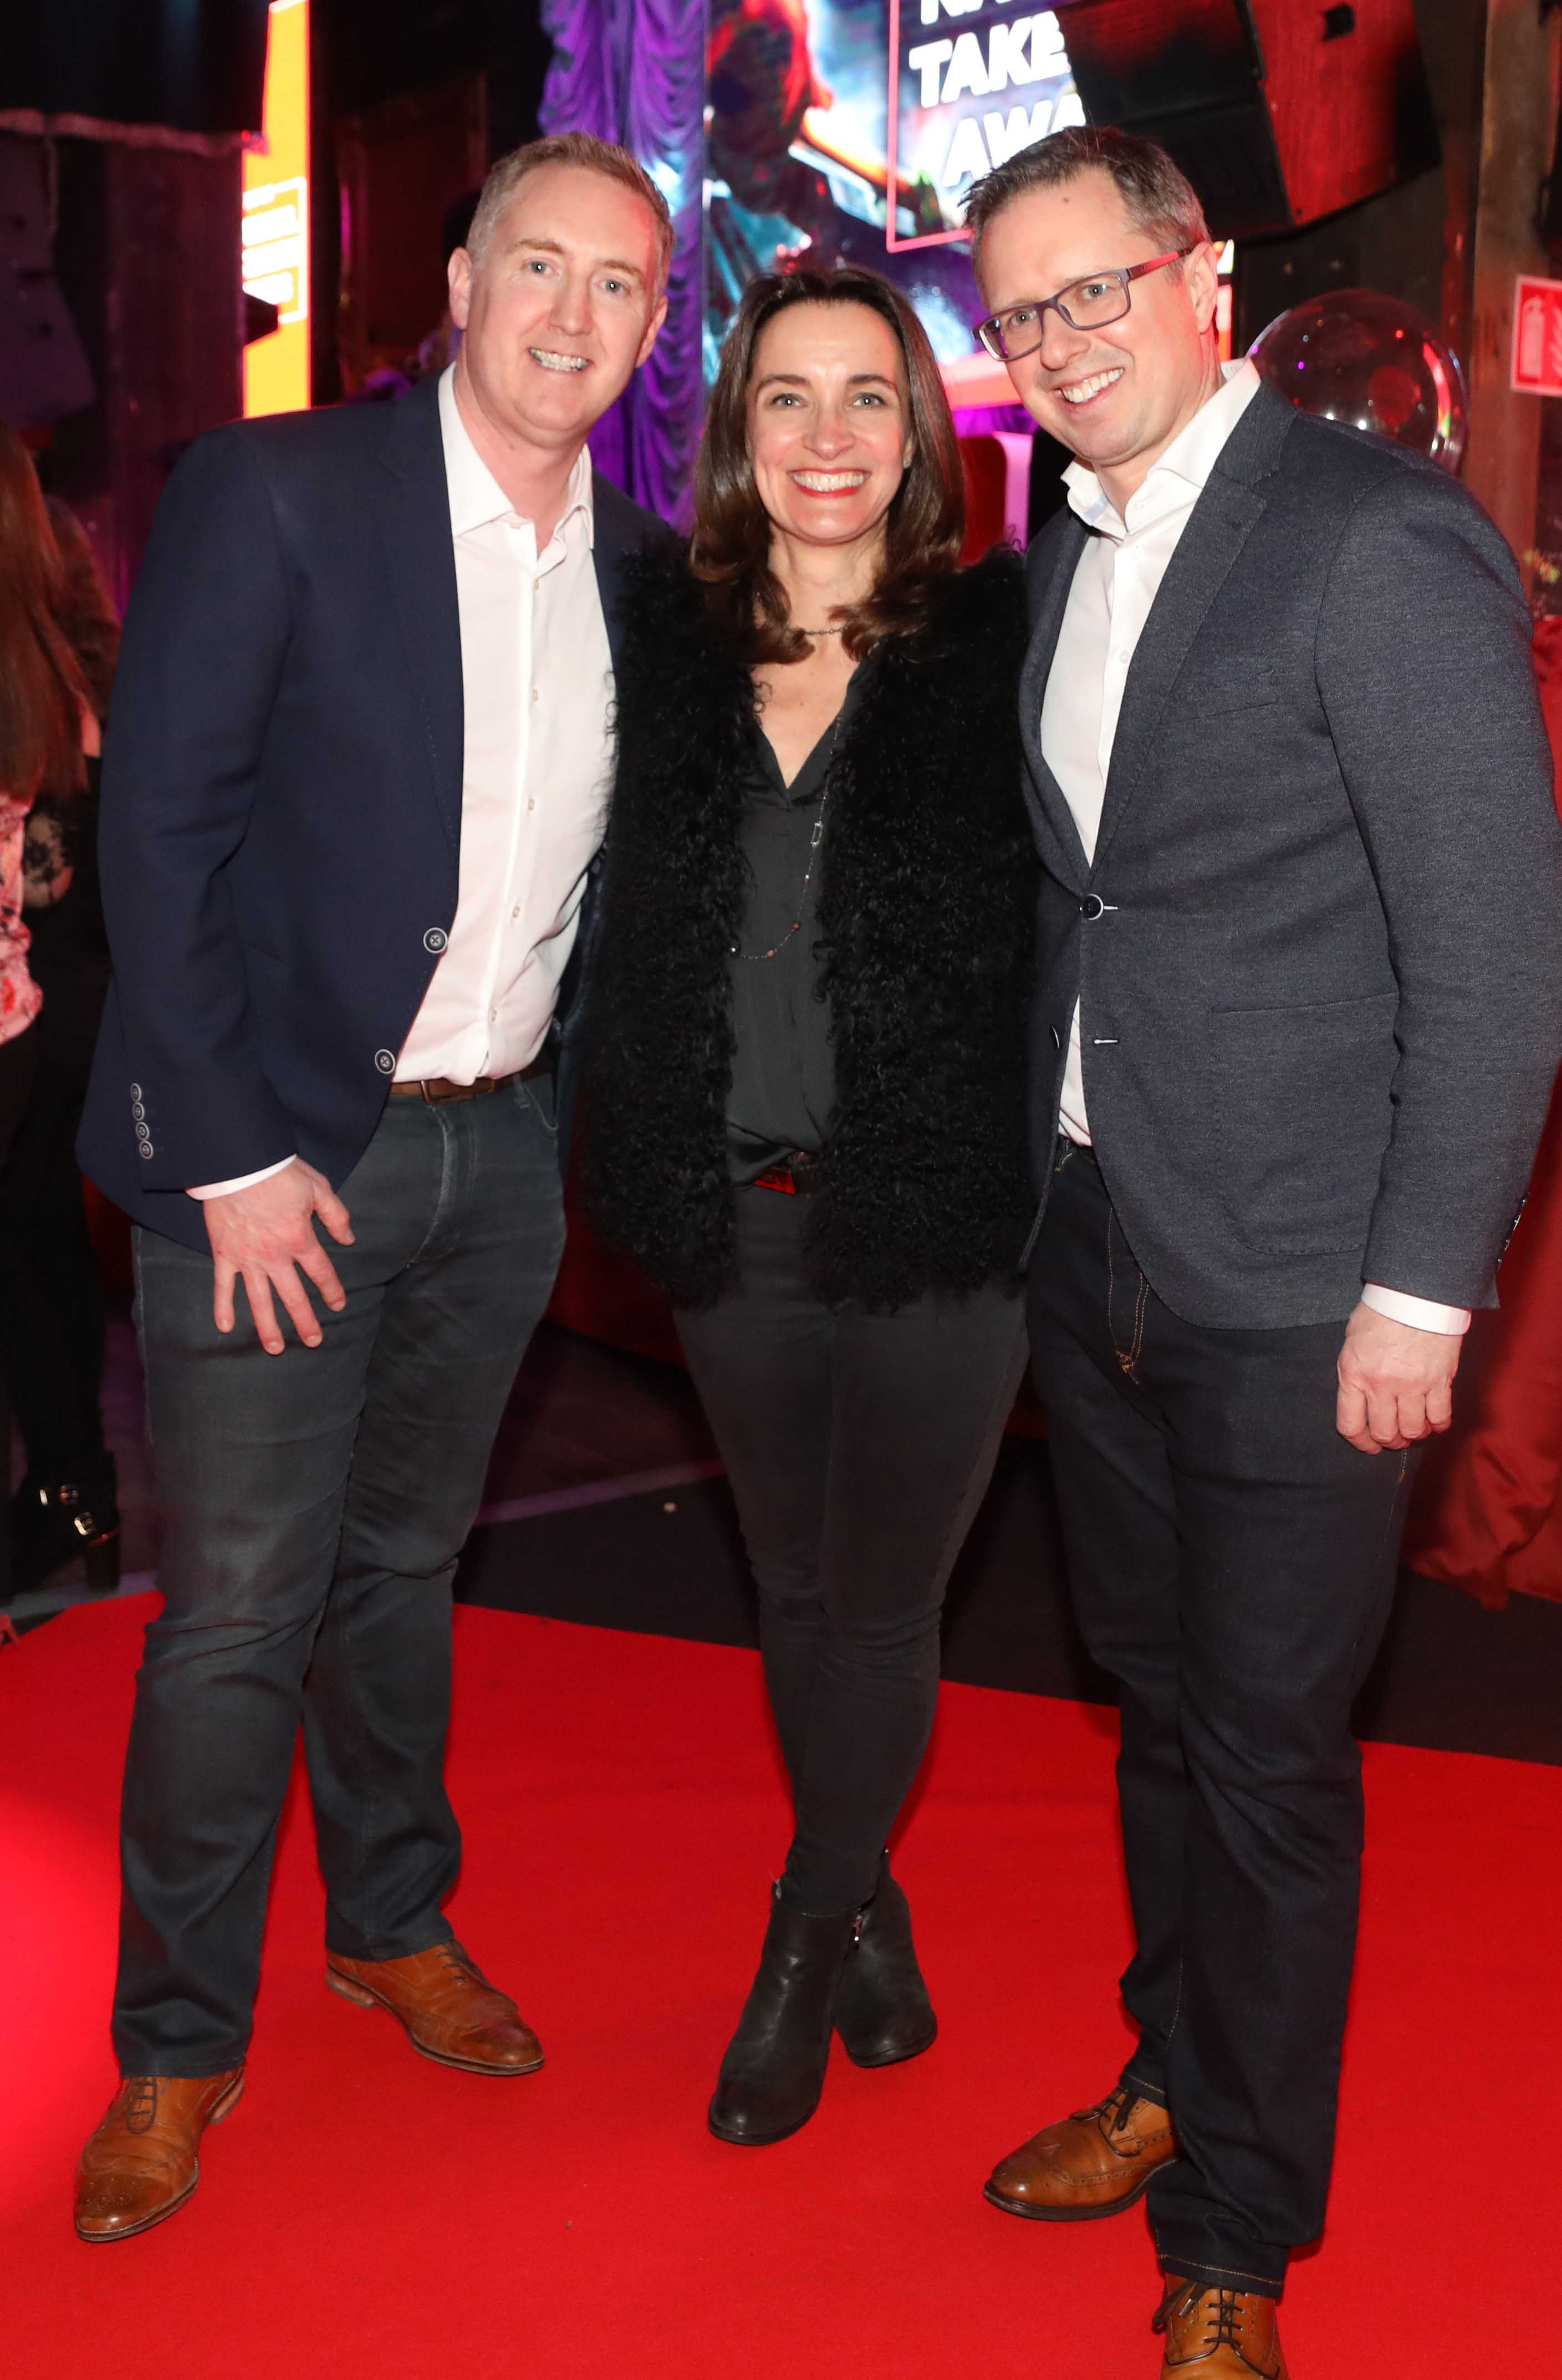 Pictured last night were Alan Cadden, Edel Kinane, Commercial Director, Just Eat Ireland and Paul Cadden at the sixth annual Just Eat National Takeaway Awards in Dublin's Twenty Two. Photograph: Leon Farrell / Photocall Ireland